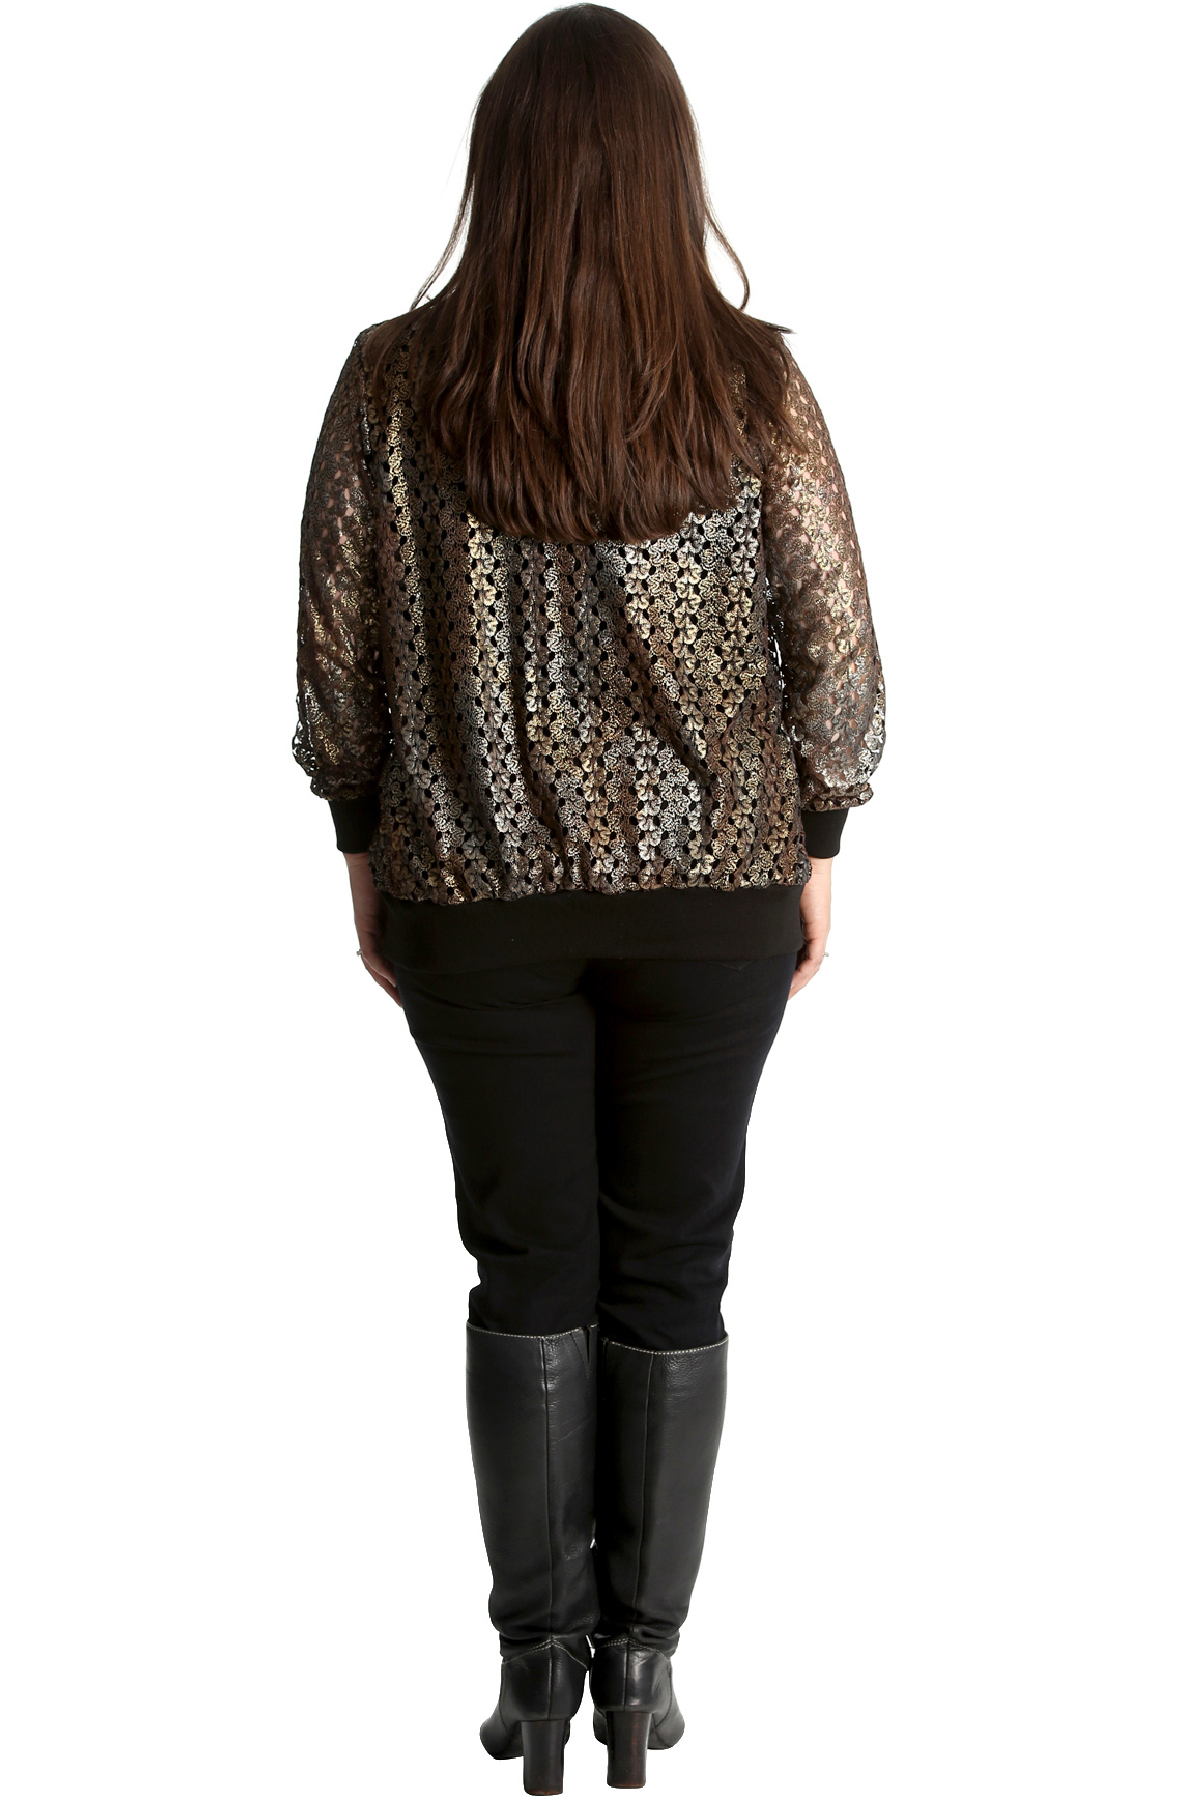 New Womens Bomber Jacket Plus Size Ladies Crochet Lace Ribbed Cuffed Shine Party